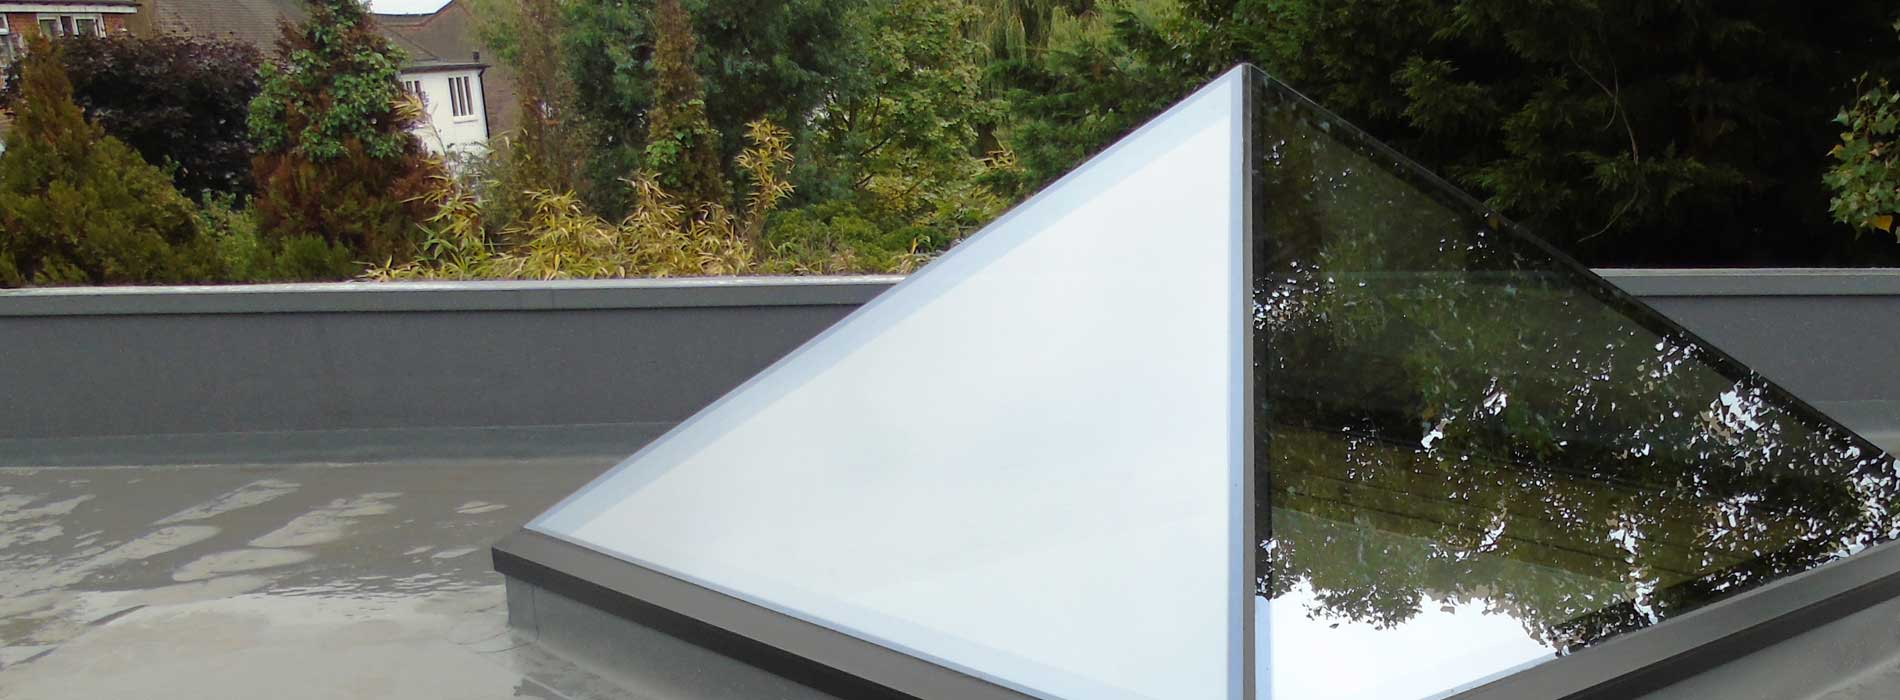 Aluminium Roof Lanterns London